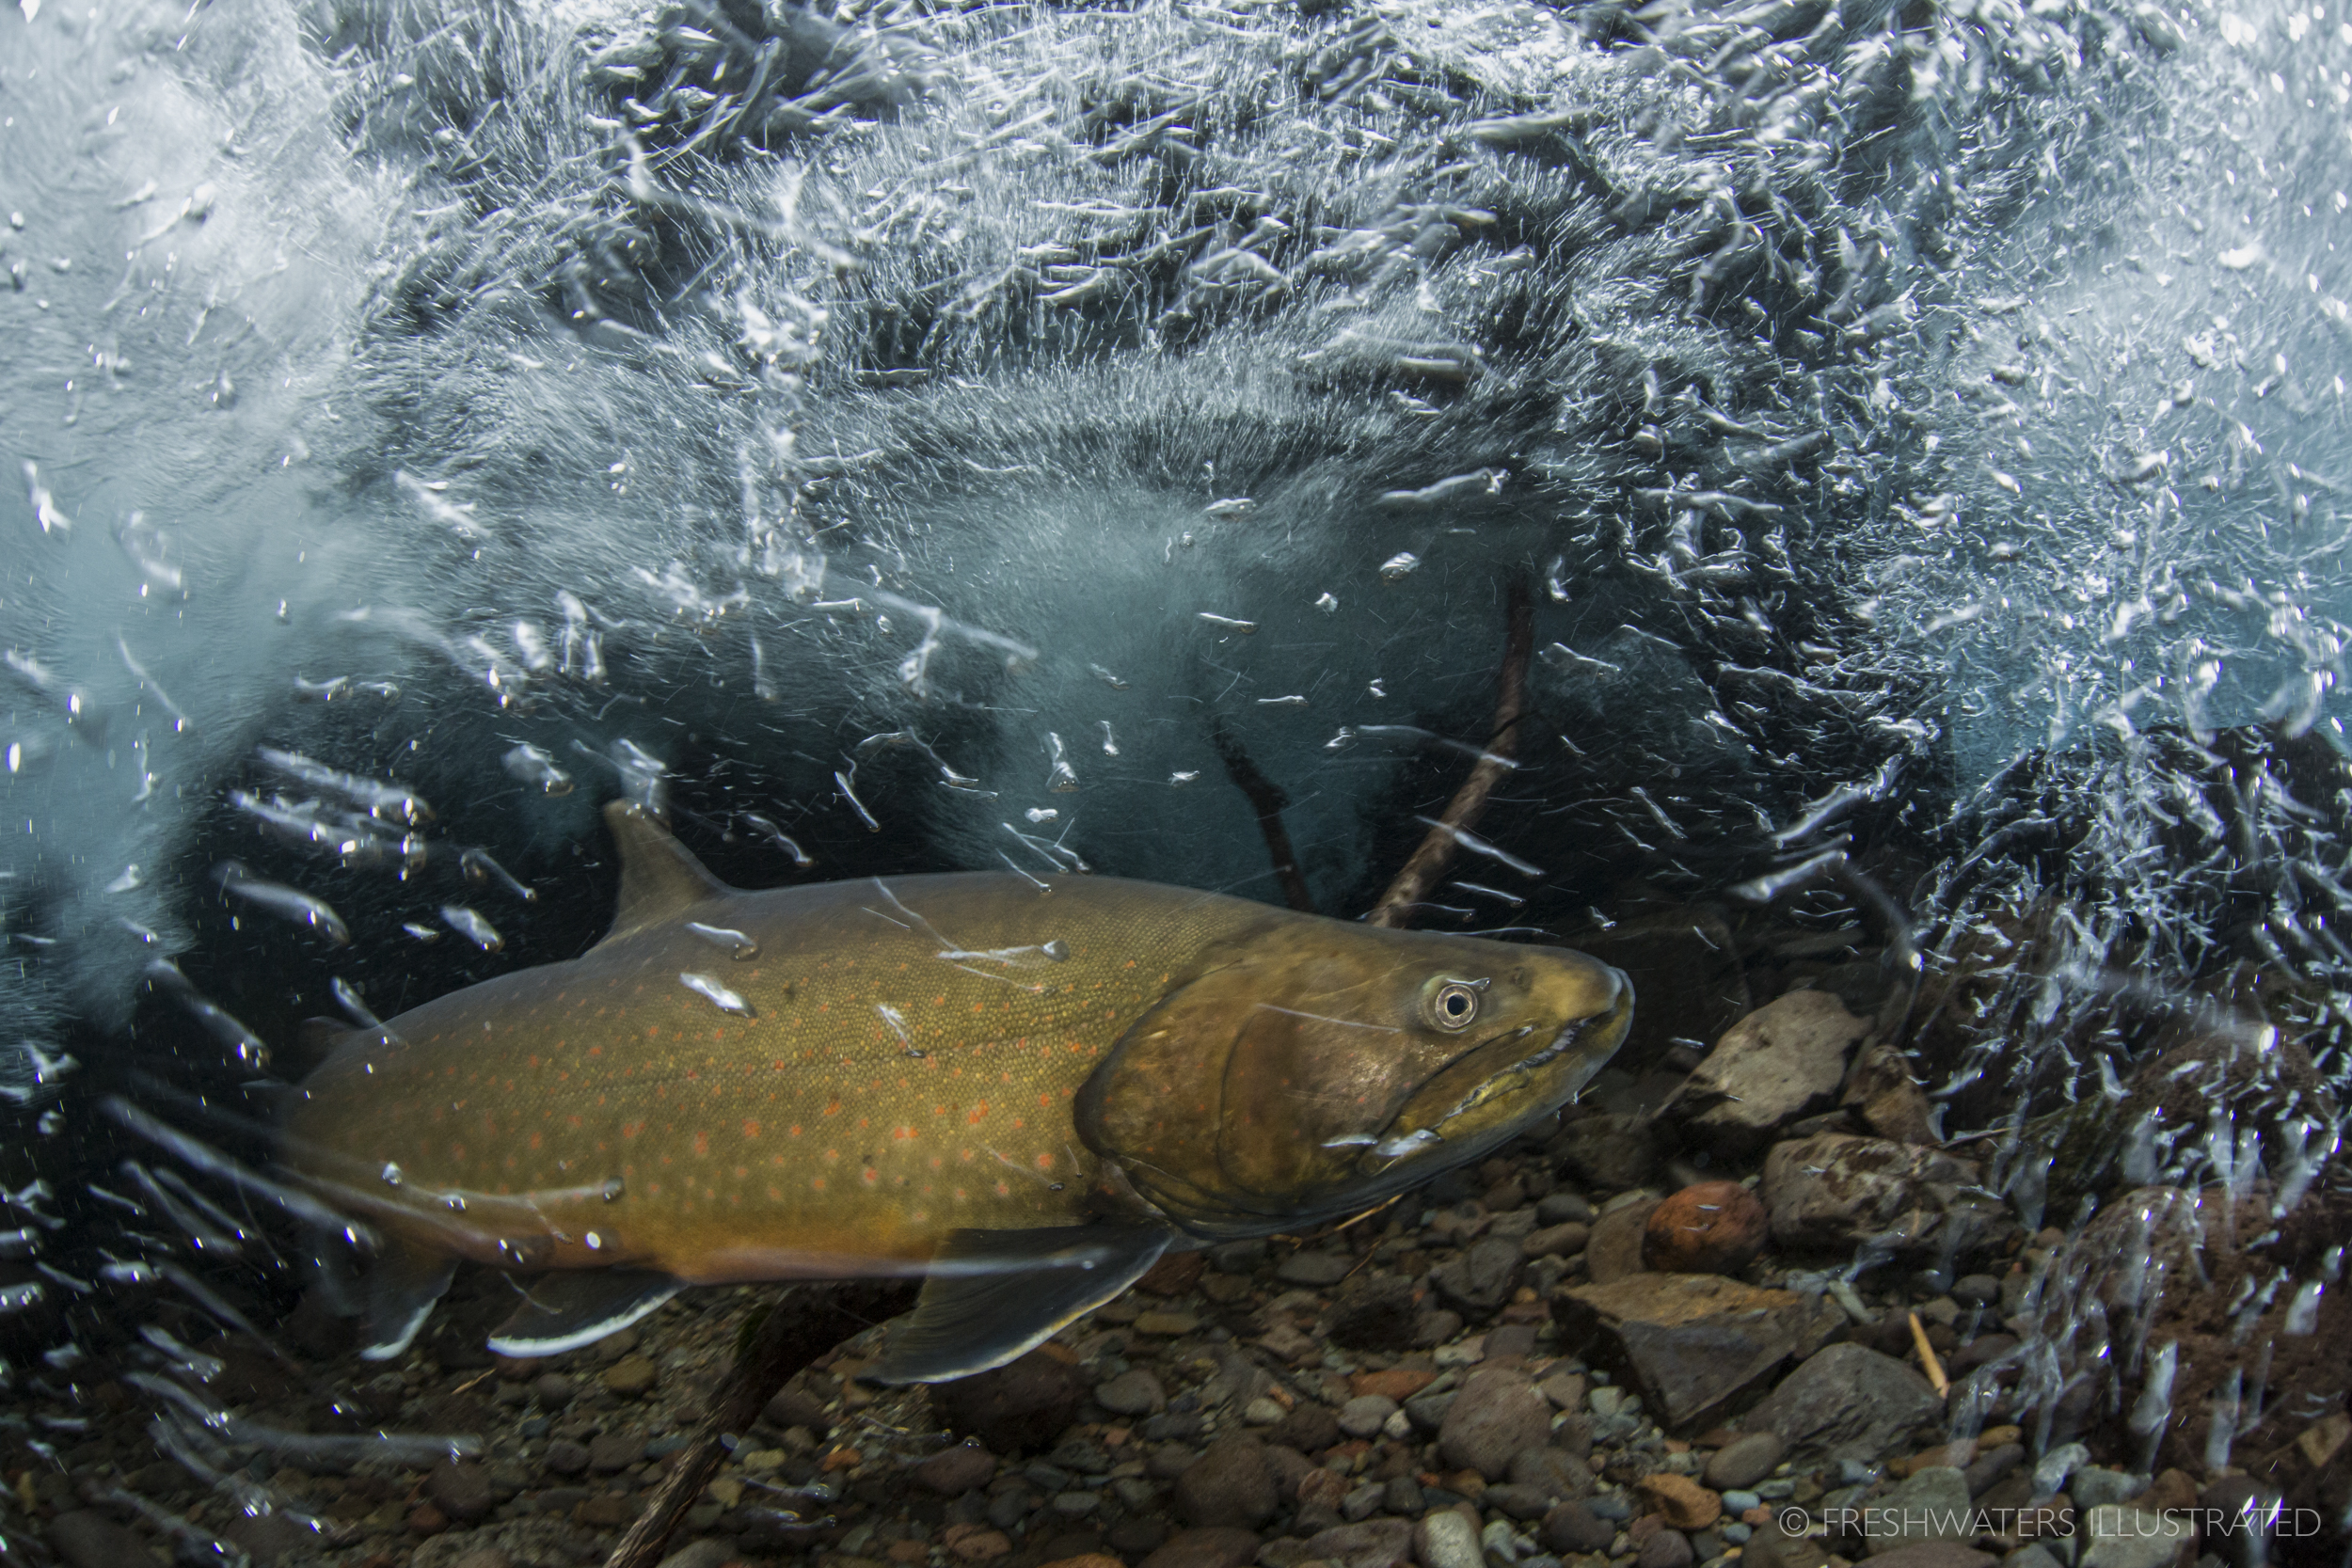 A large male bull trout (Salvelinus confluentus) fights the swift currents of a clear, cold Cascade spring stream. A Federally Threatened species, bull trout require the cleanest and coldest water to persist. Roaring River, Oregon  www.FreshwatersIllustrated.org